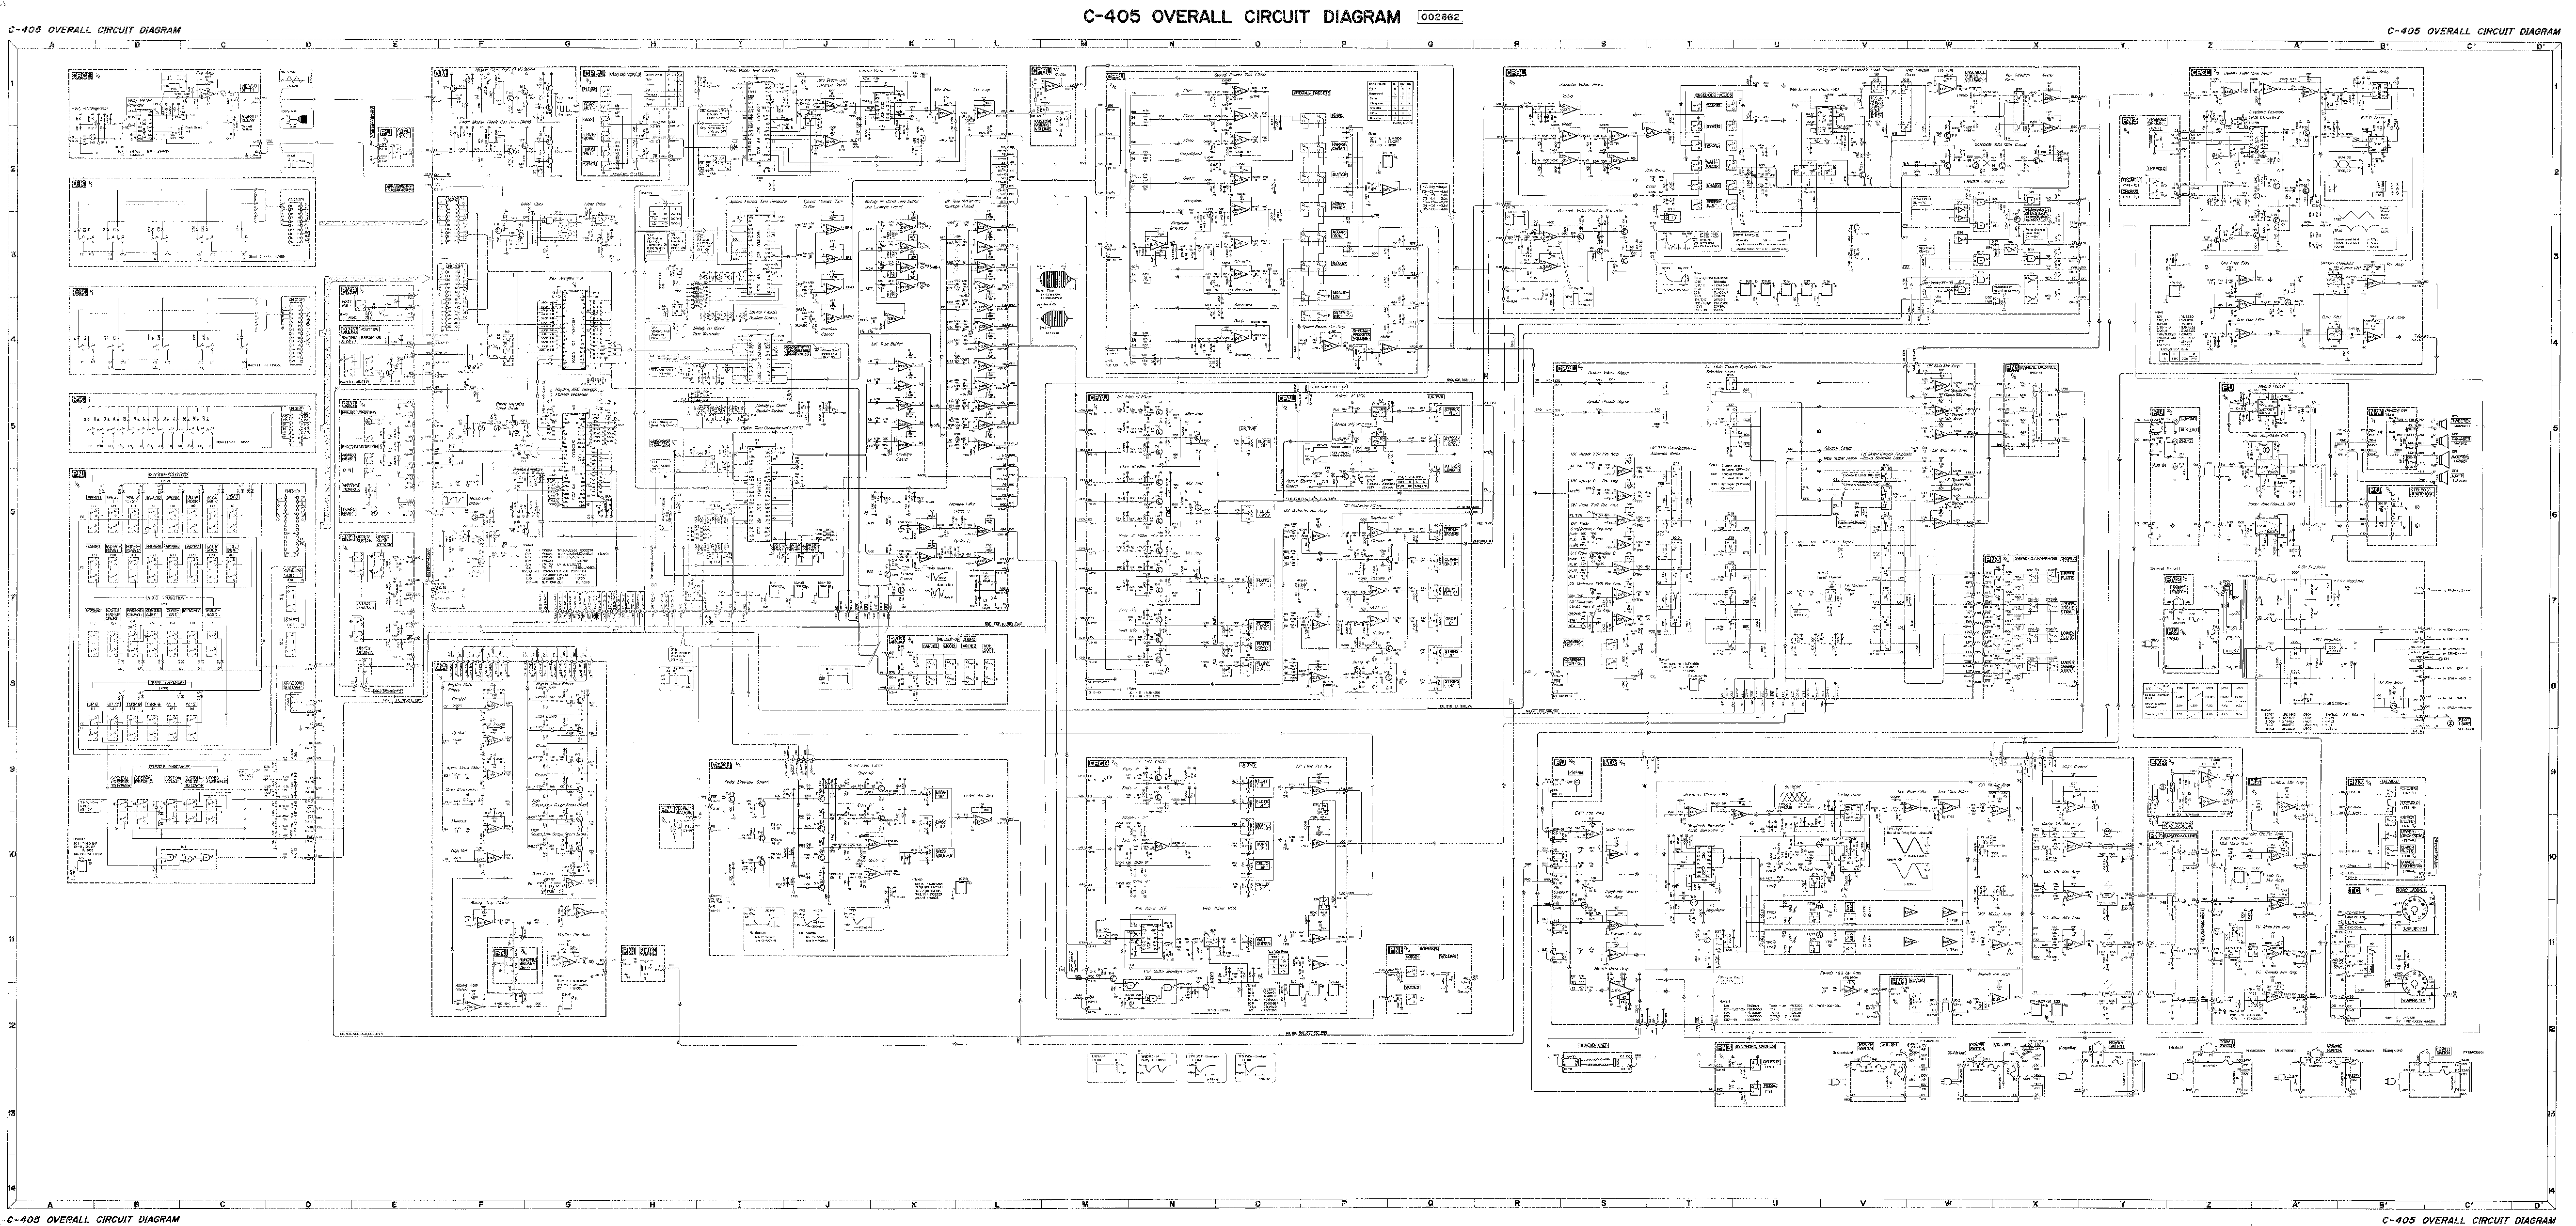 YAMAHA PSR-1500 PSR-3000 SM Service Manual download